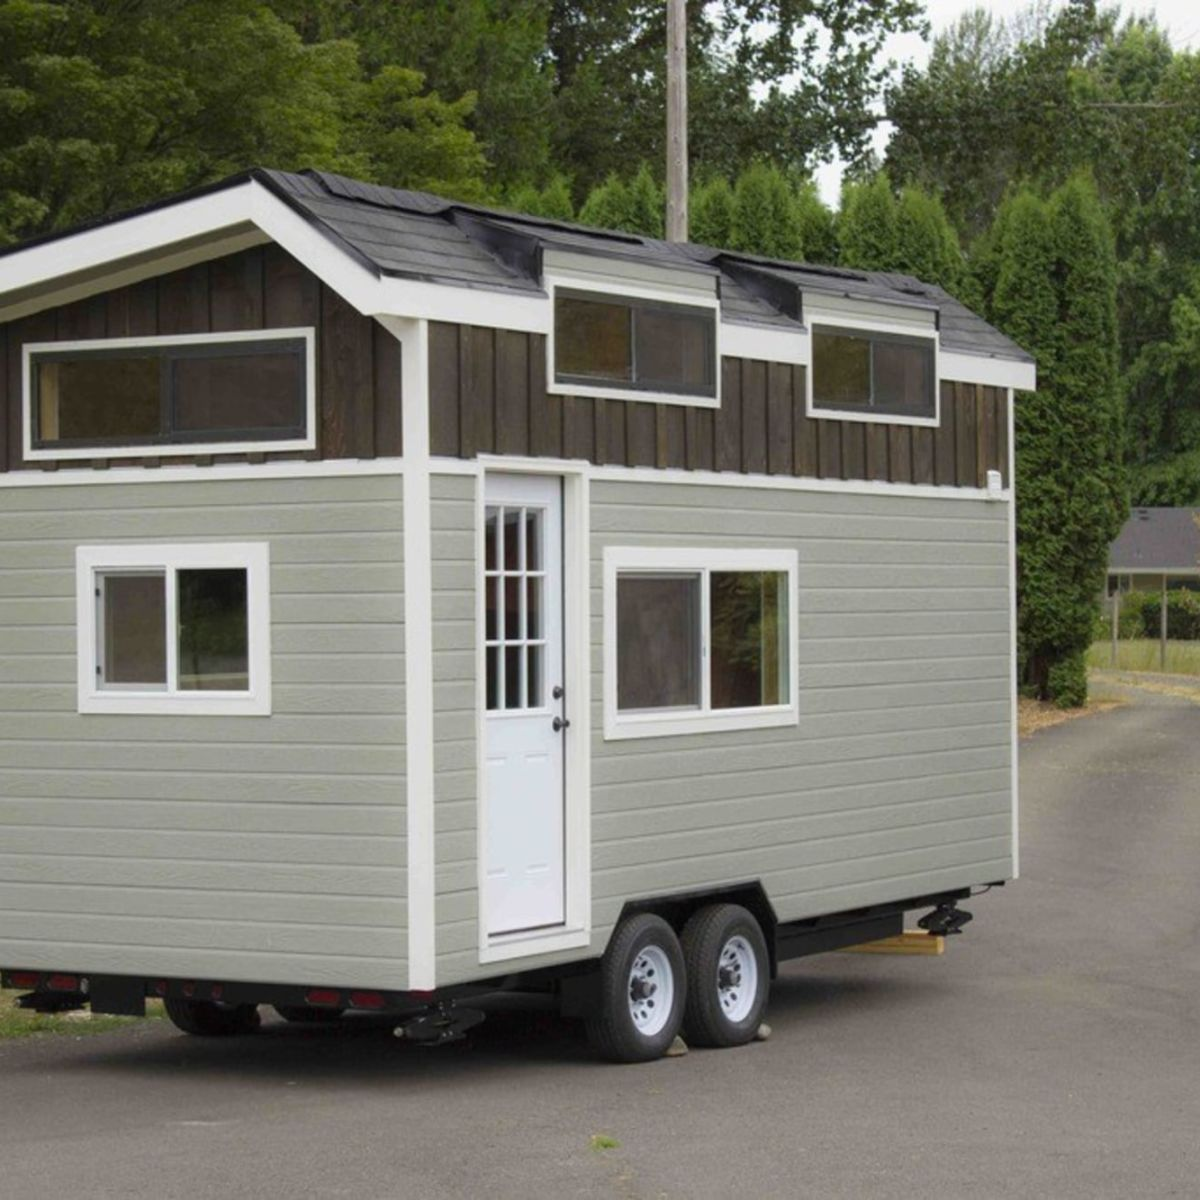 Tiny Houses For Sale In Springfield - Tiny Houses For Sale ...